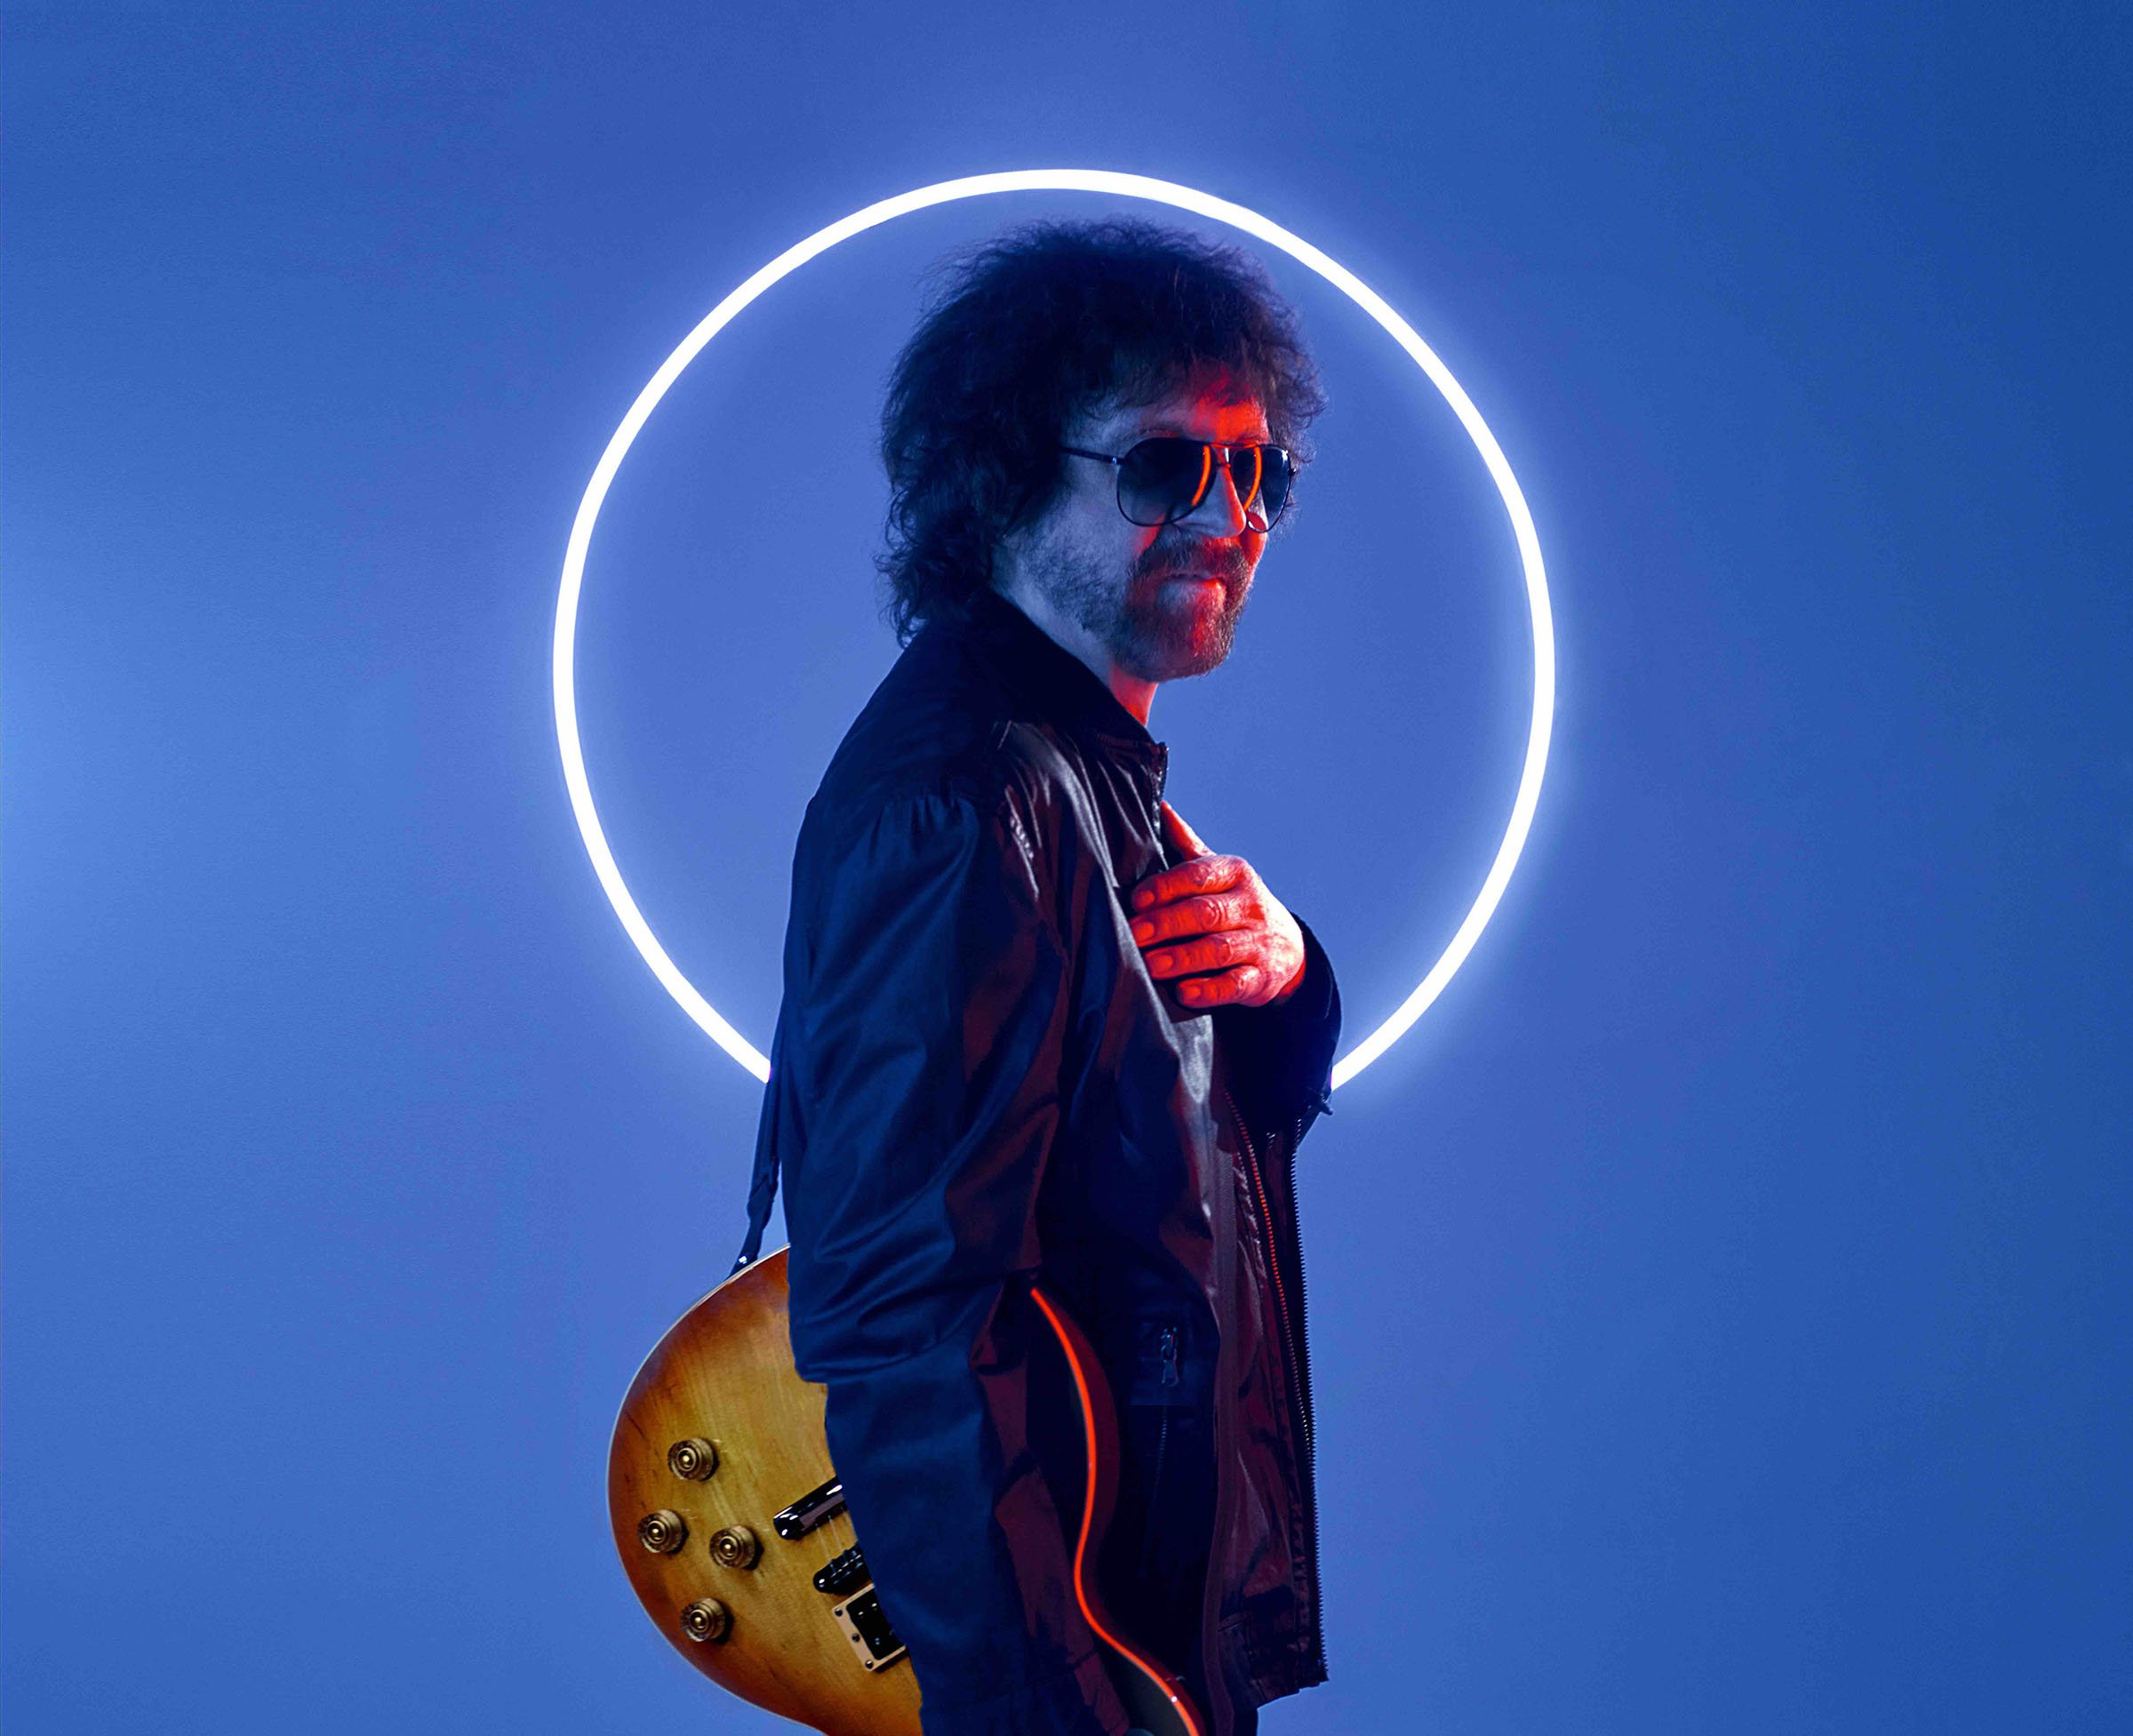 JEFF LYNNE'S ELO adds DHANI HARRISON to 2020 'From Out of Nowhere' UK tour